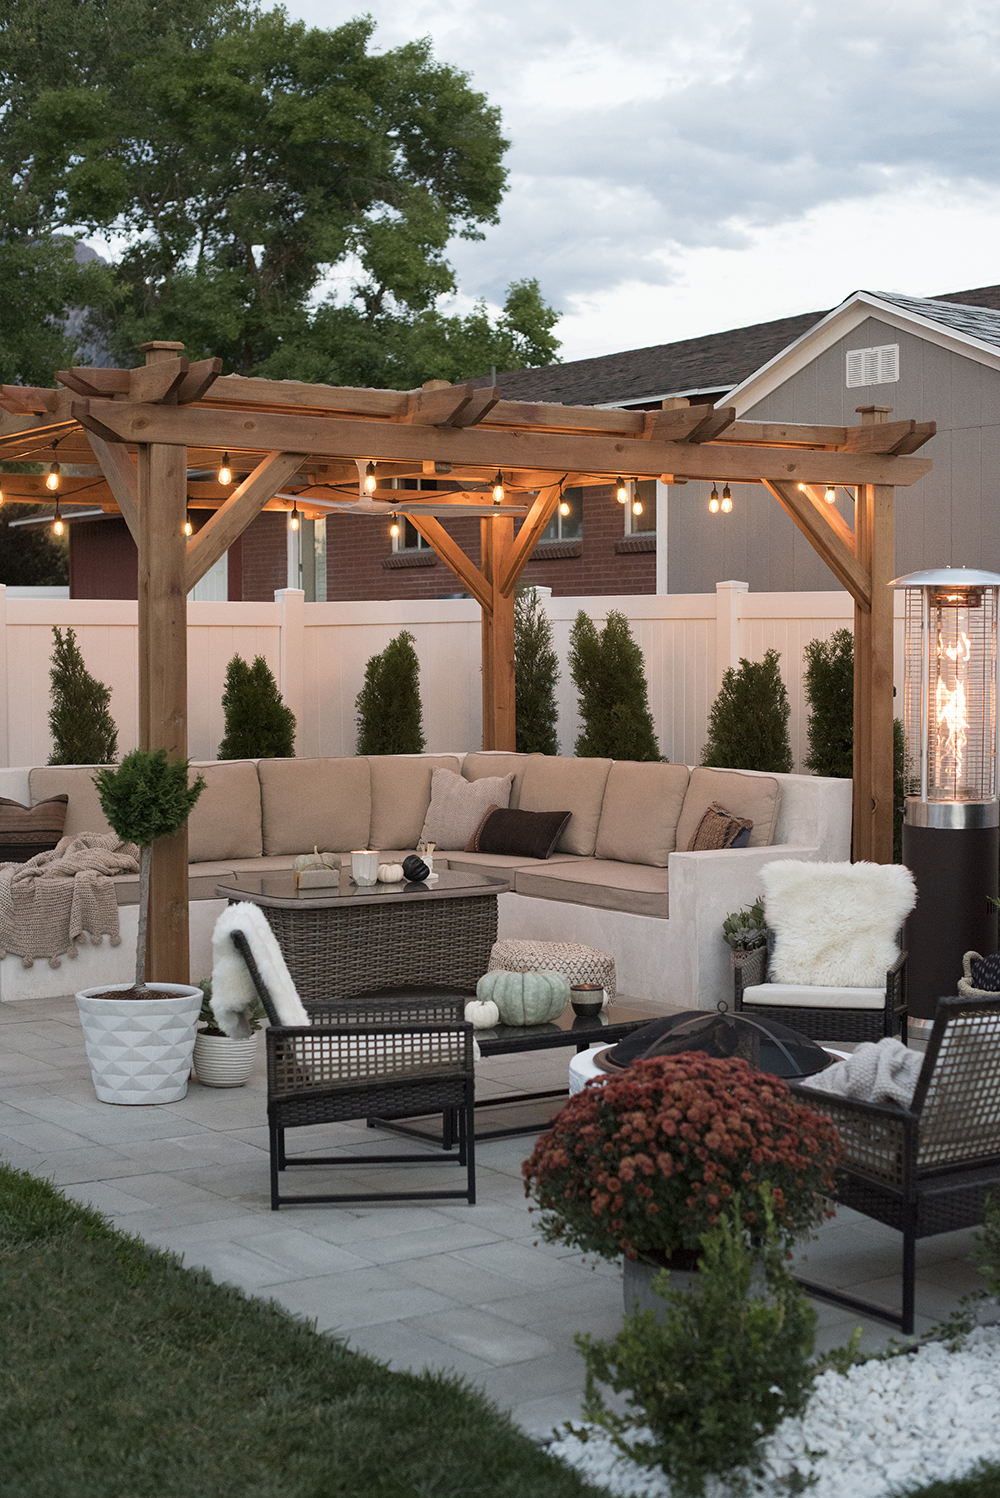 Outdoor Patio for Fall